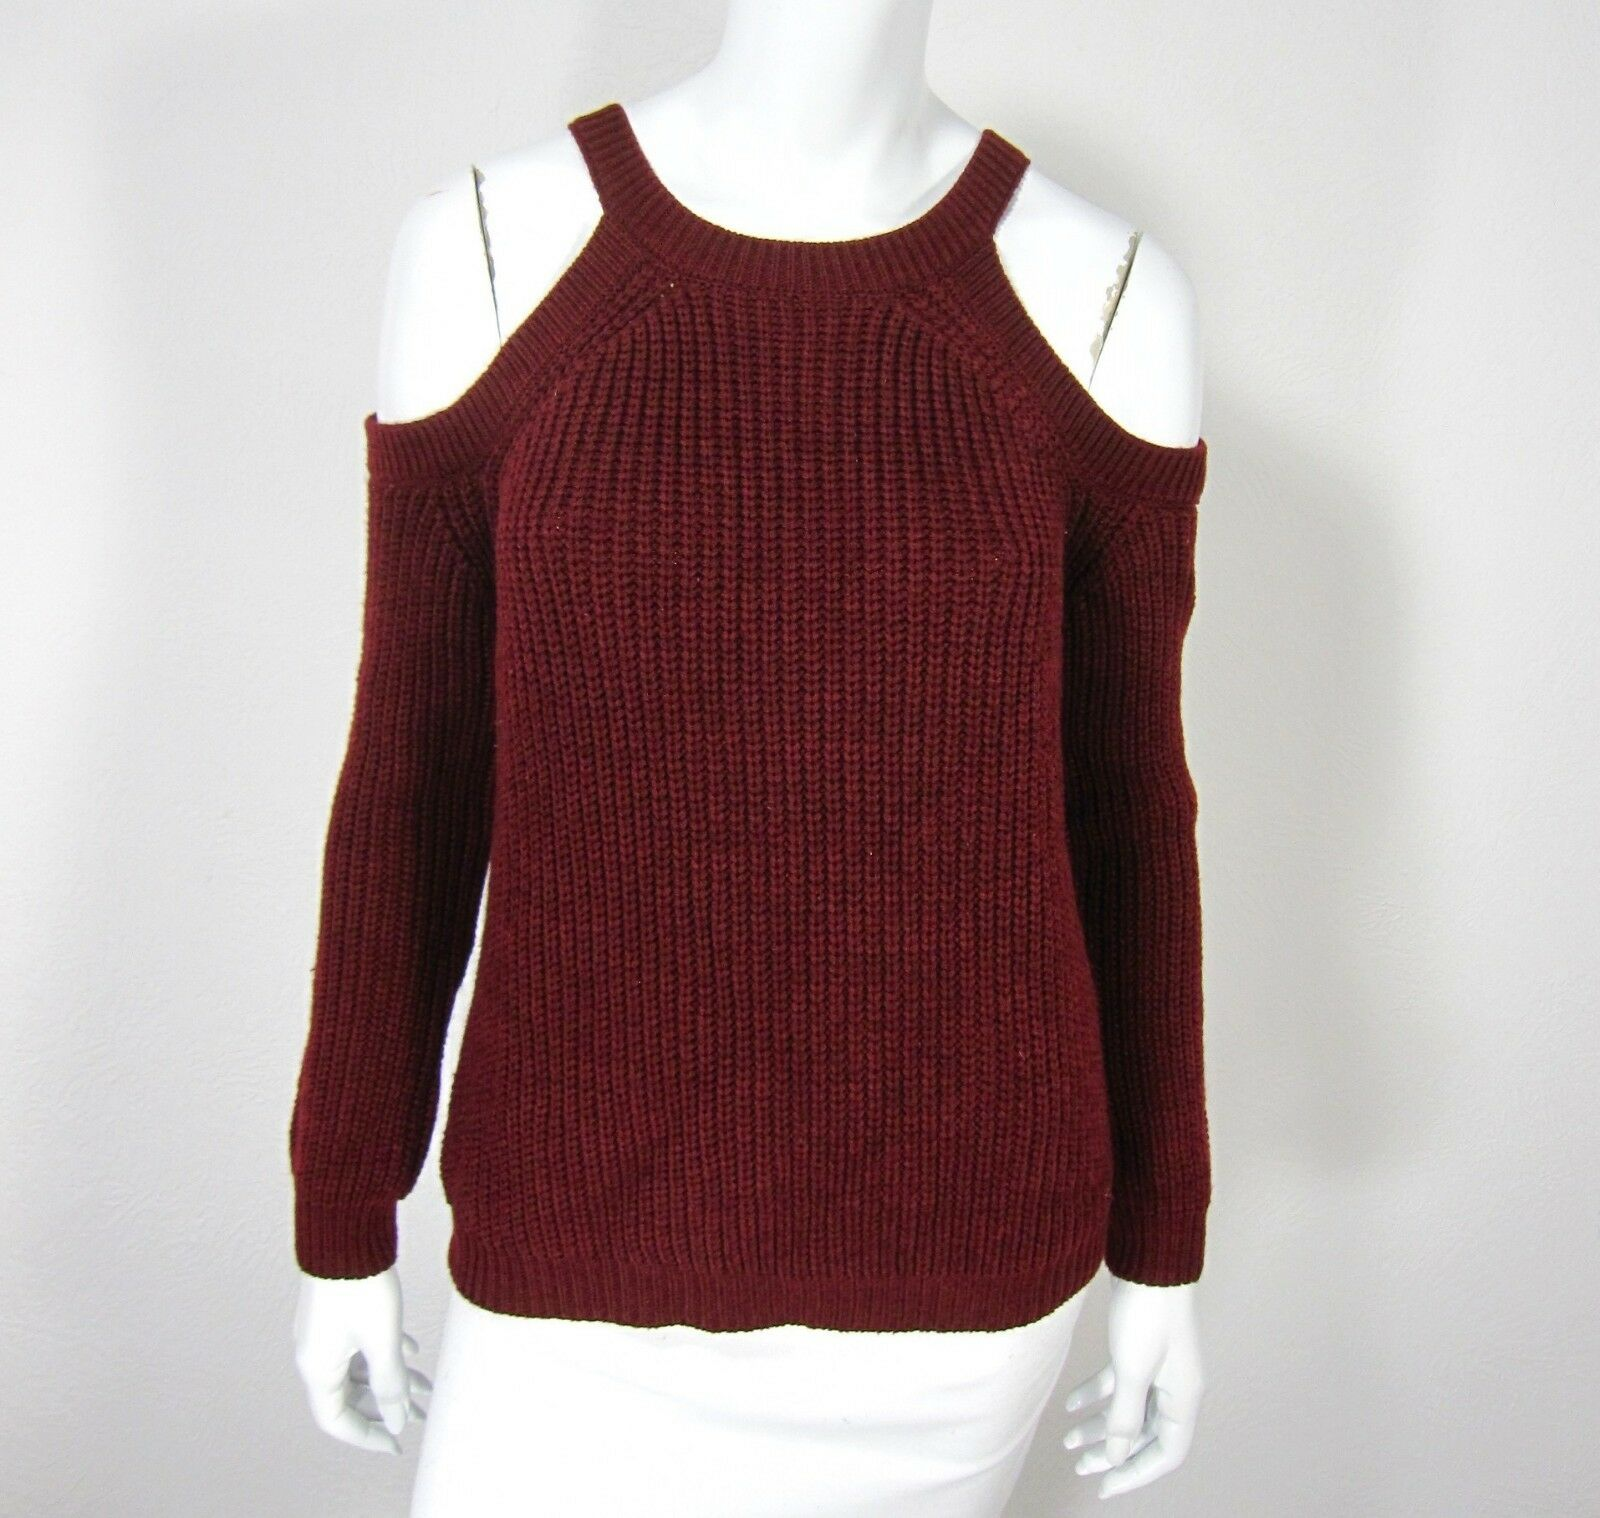 ACTIVE USA LONG SLEEVE SWEATER SIZE M MEDIUM COLD SHOULDER SOLID RED BURGUNDY